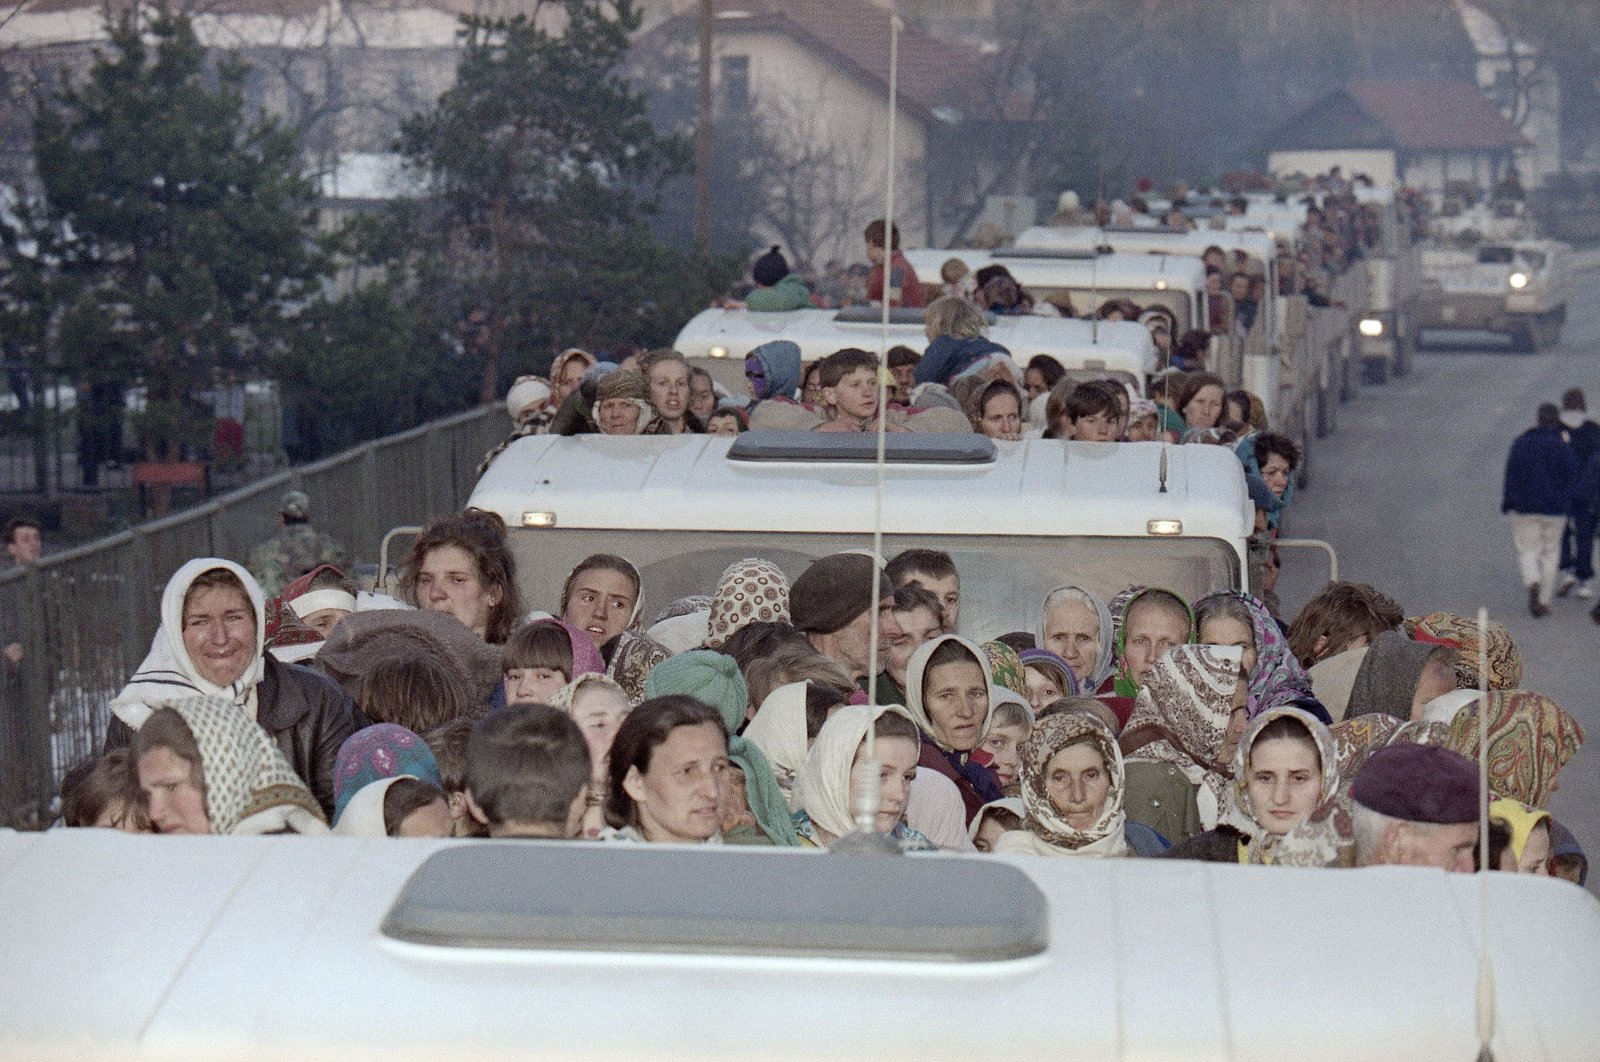 More than 2,300 refugees from the besieged Muslim enclave of Srebrenica arrive on a United Nations convoy in Tuzla, Bosnia and Herzegovina, March 29, 1993. (AP Photo)